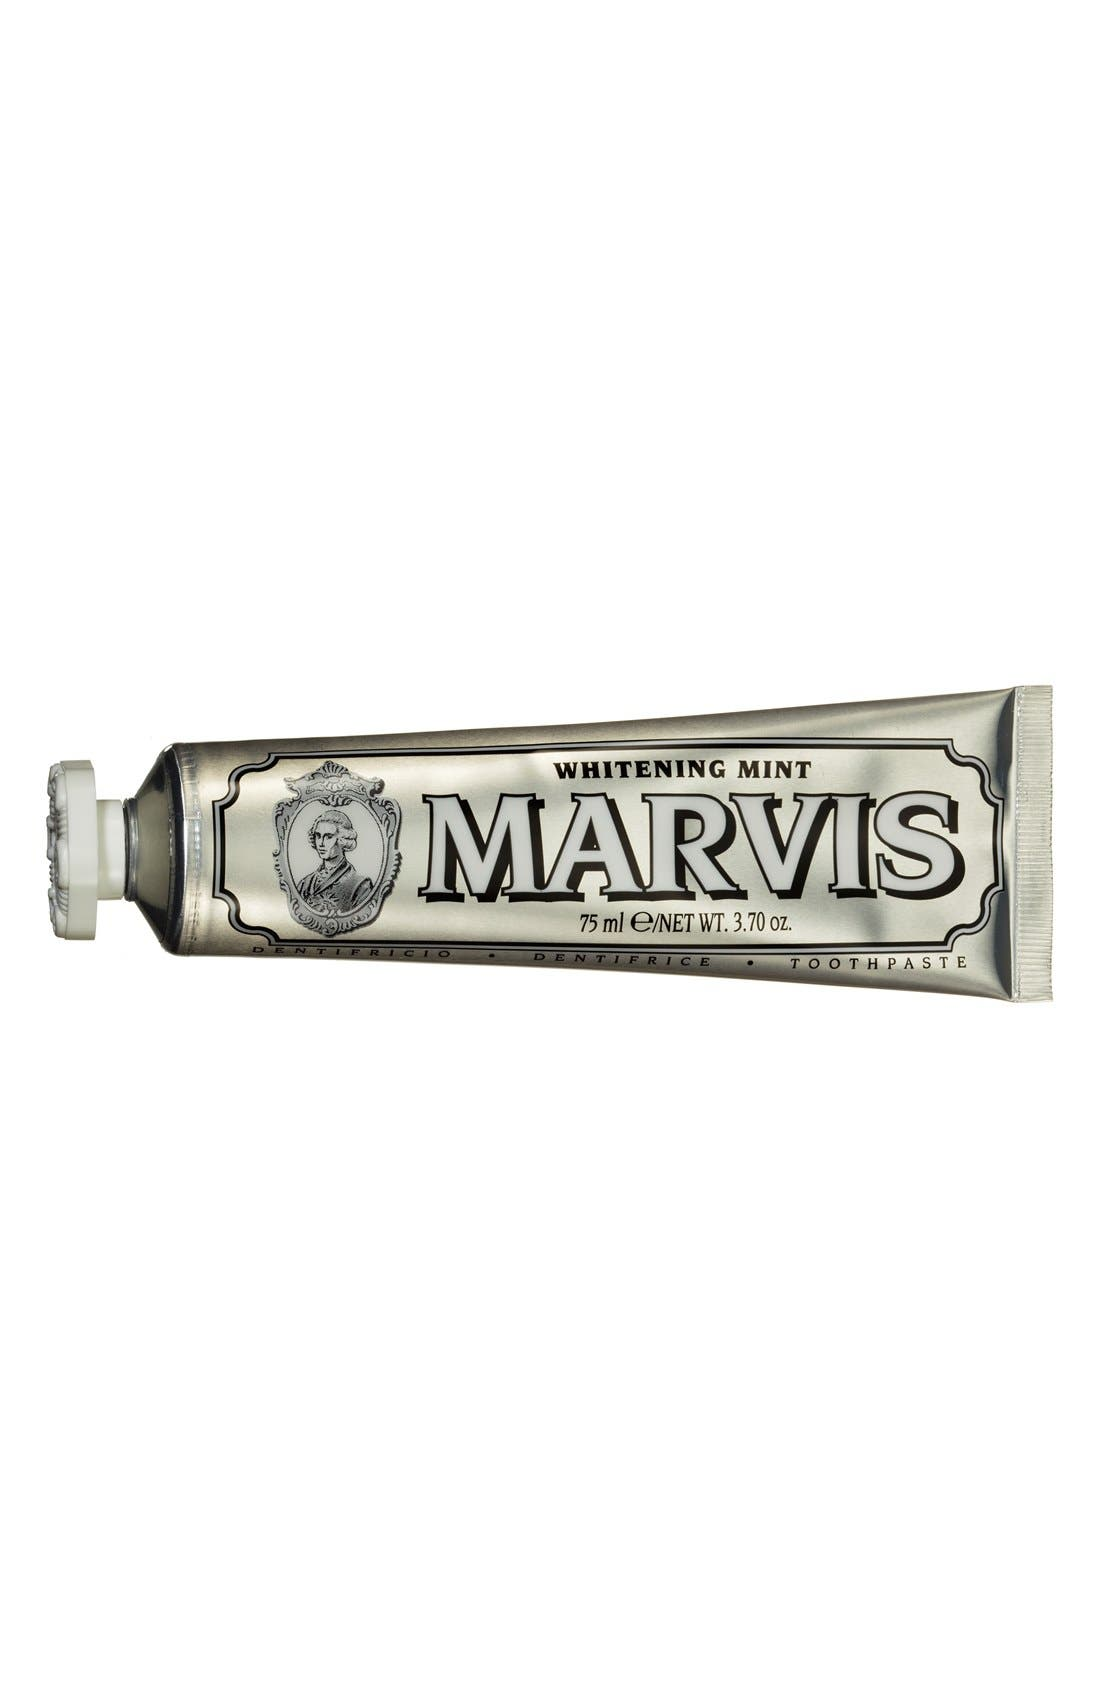 'Marvis' Whitening Mint Toothpaste,                             Main thumbnail 1, color,                             NO COLOR